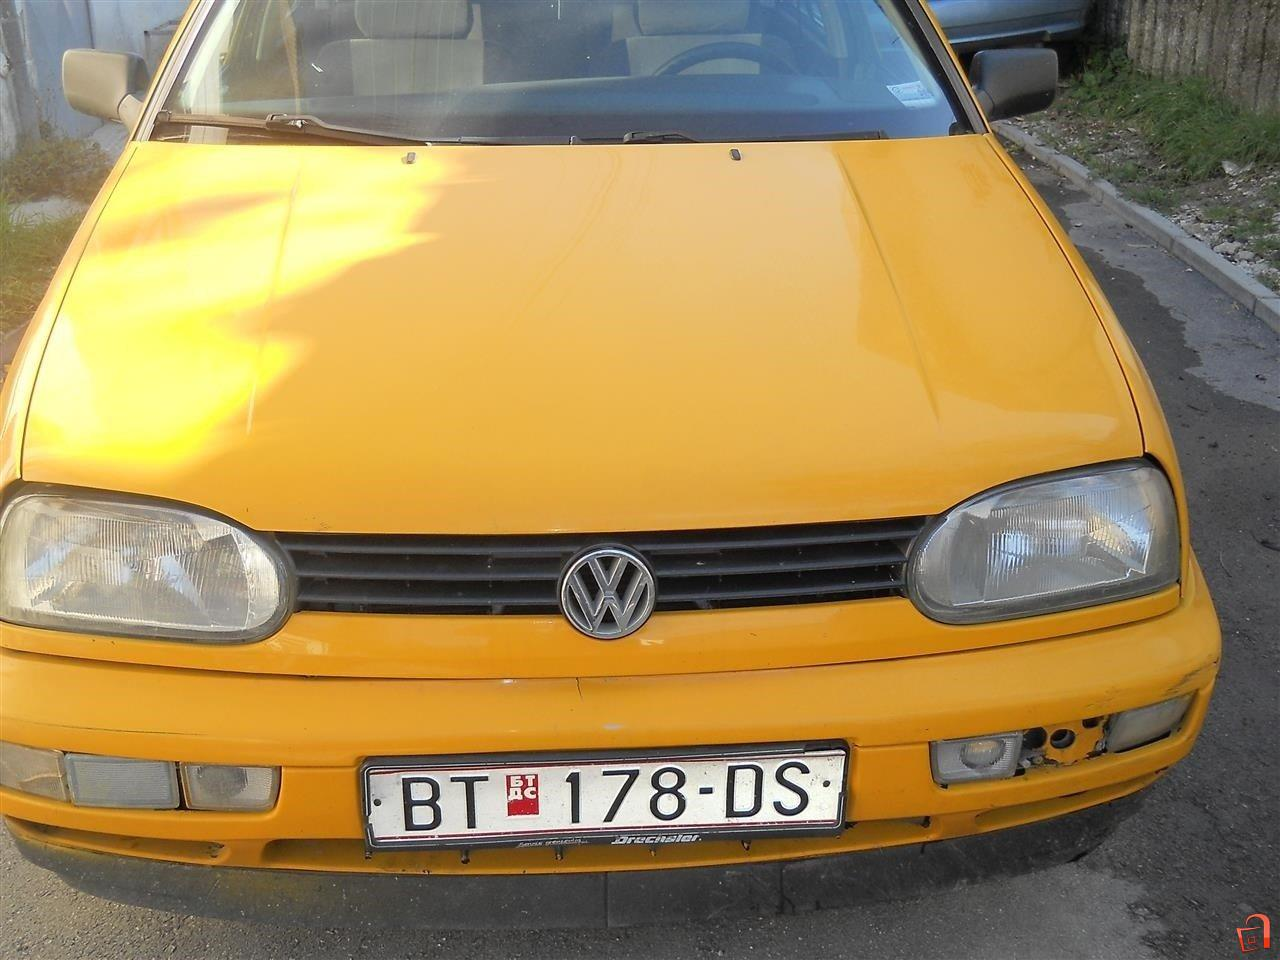 ad vw golf 3 1 9 tdi 97 for sale bitola bitola vehicles automobiles vw. Black Bedroom Furniture Sets. Home Design Ideas